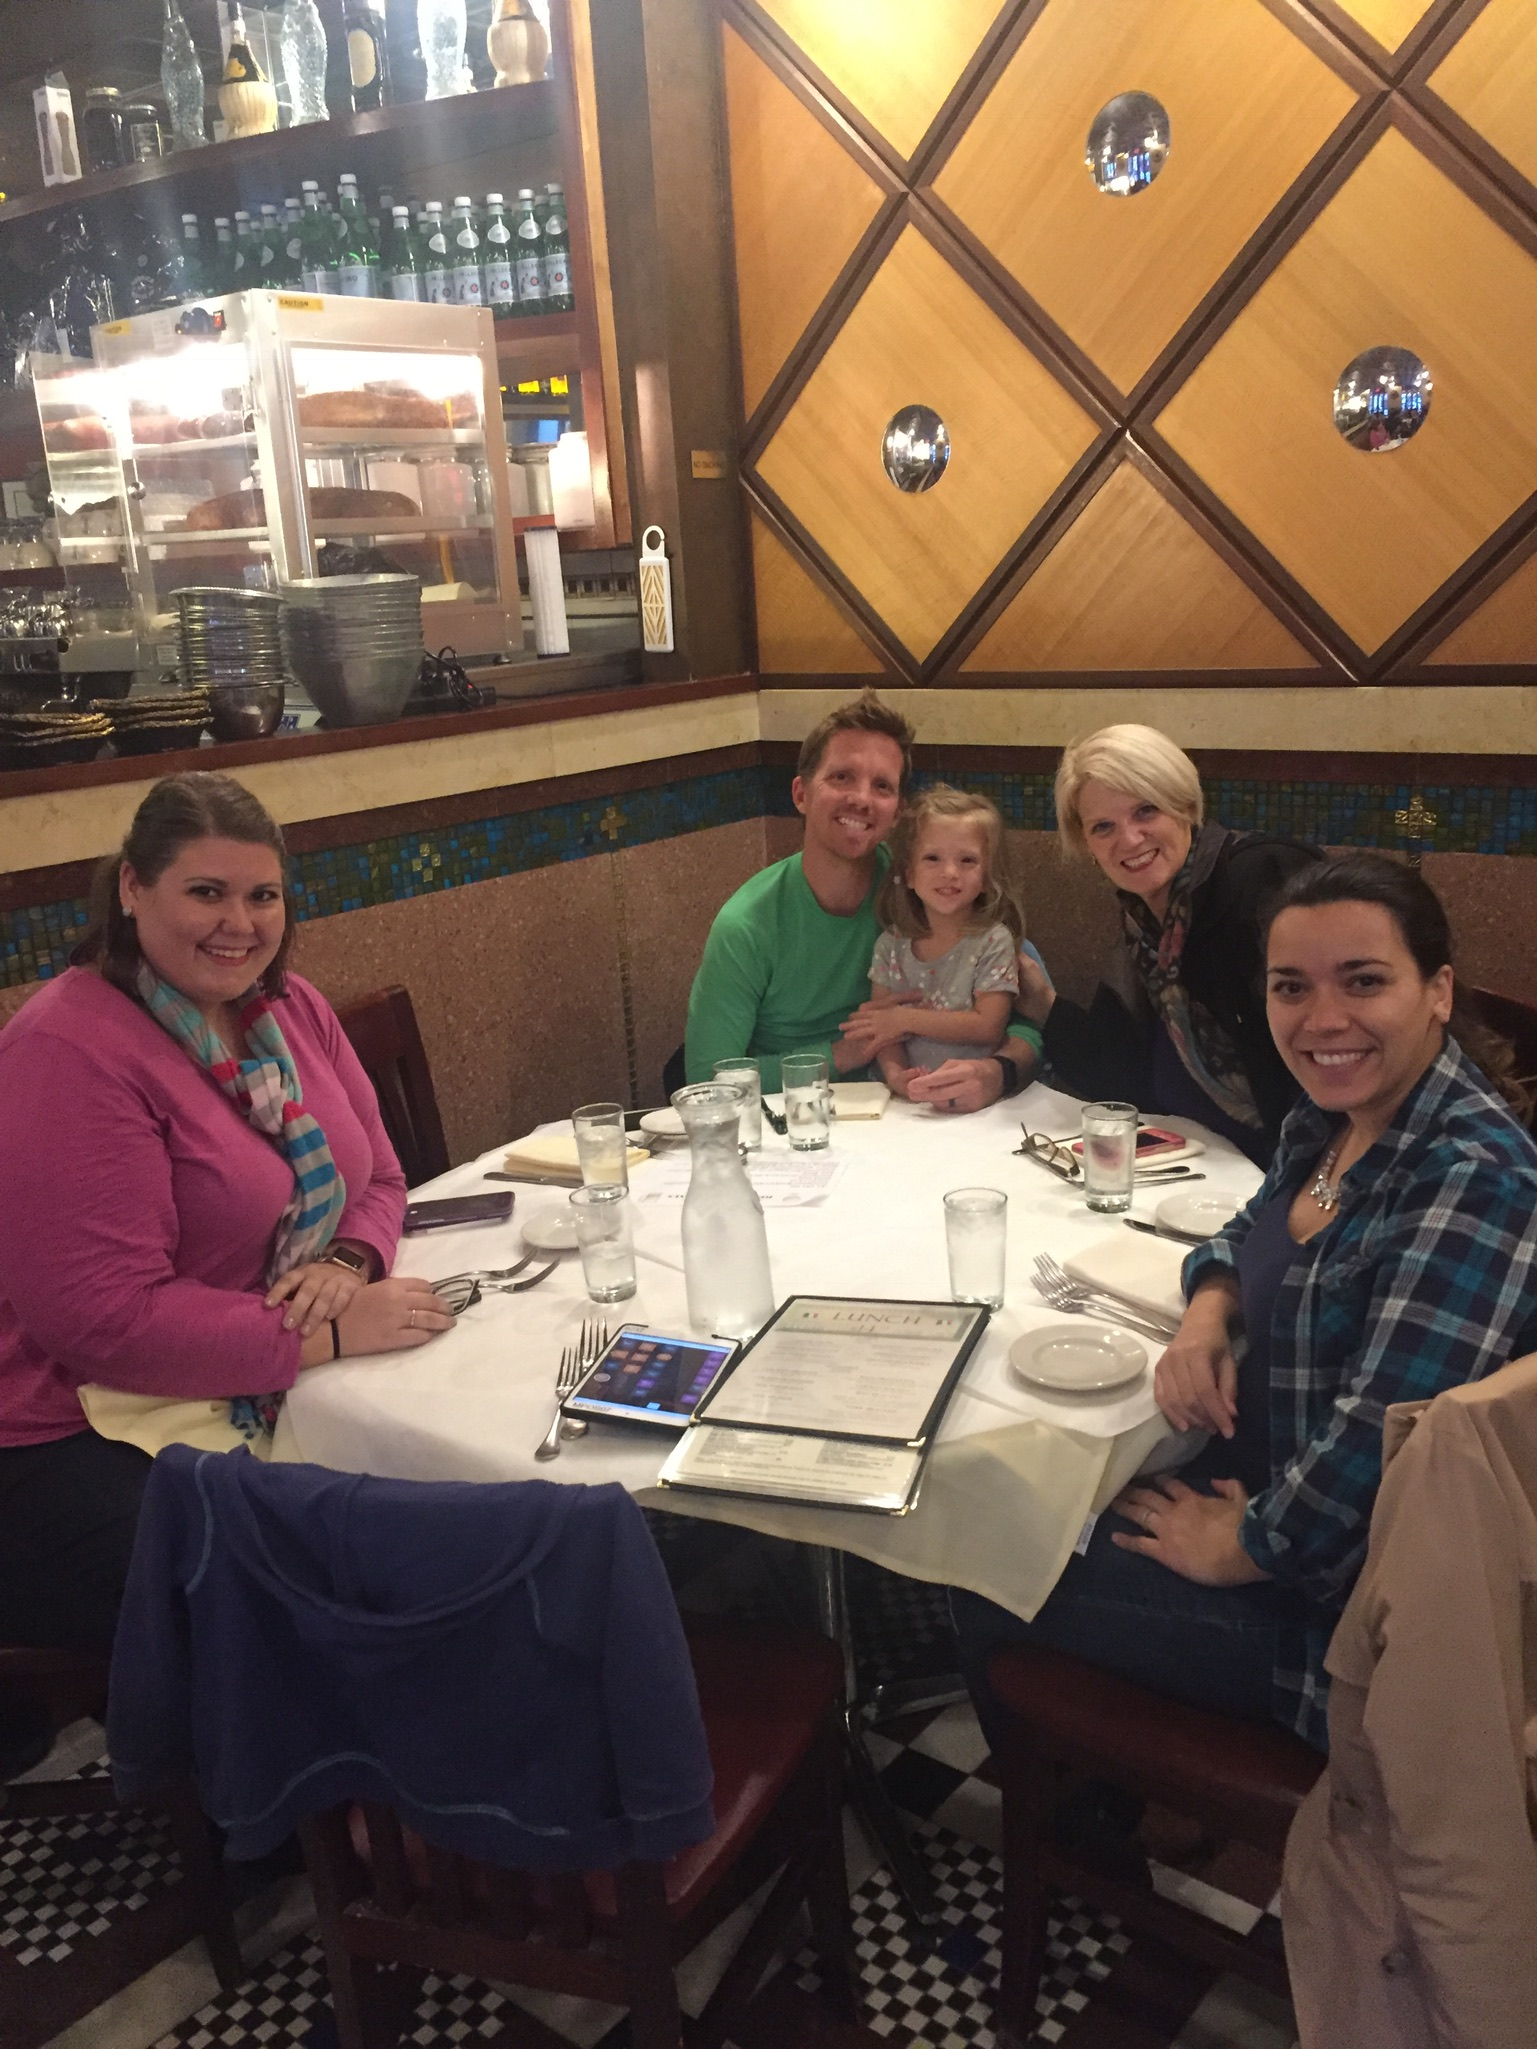 It was fun to have Tiffany and Aunt Neise in town that weekend, too. We went to Little Italy and Serendiptiy with them and had lots of tea parties at home.